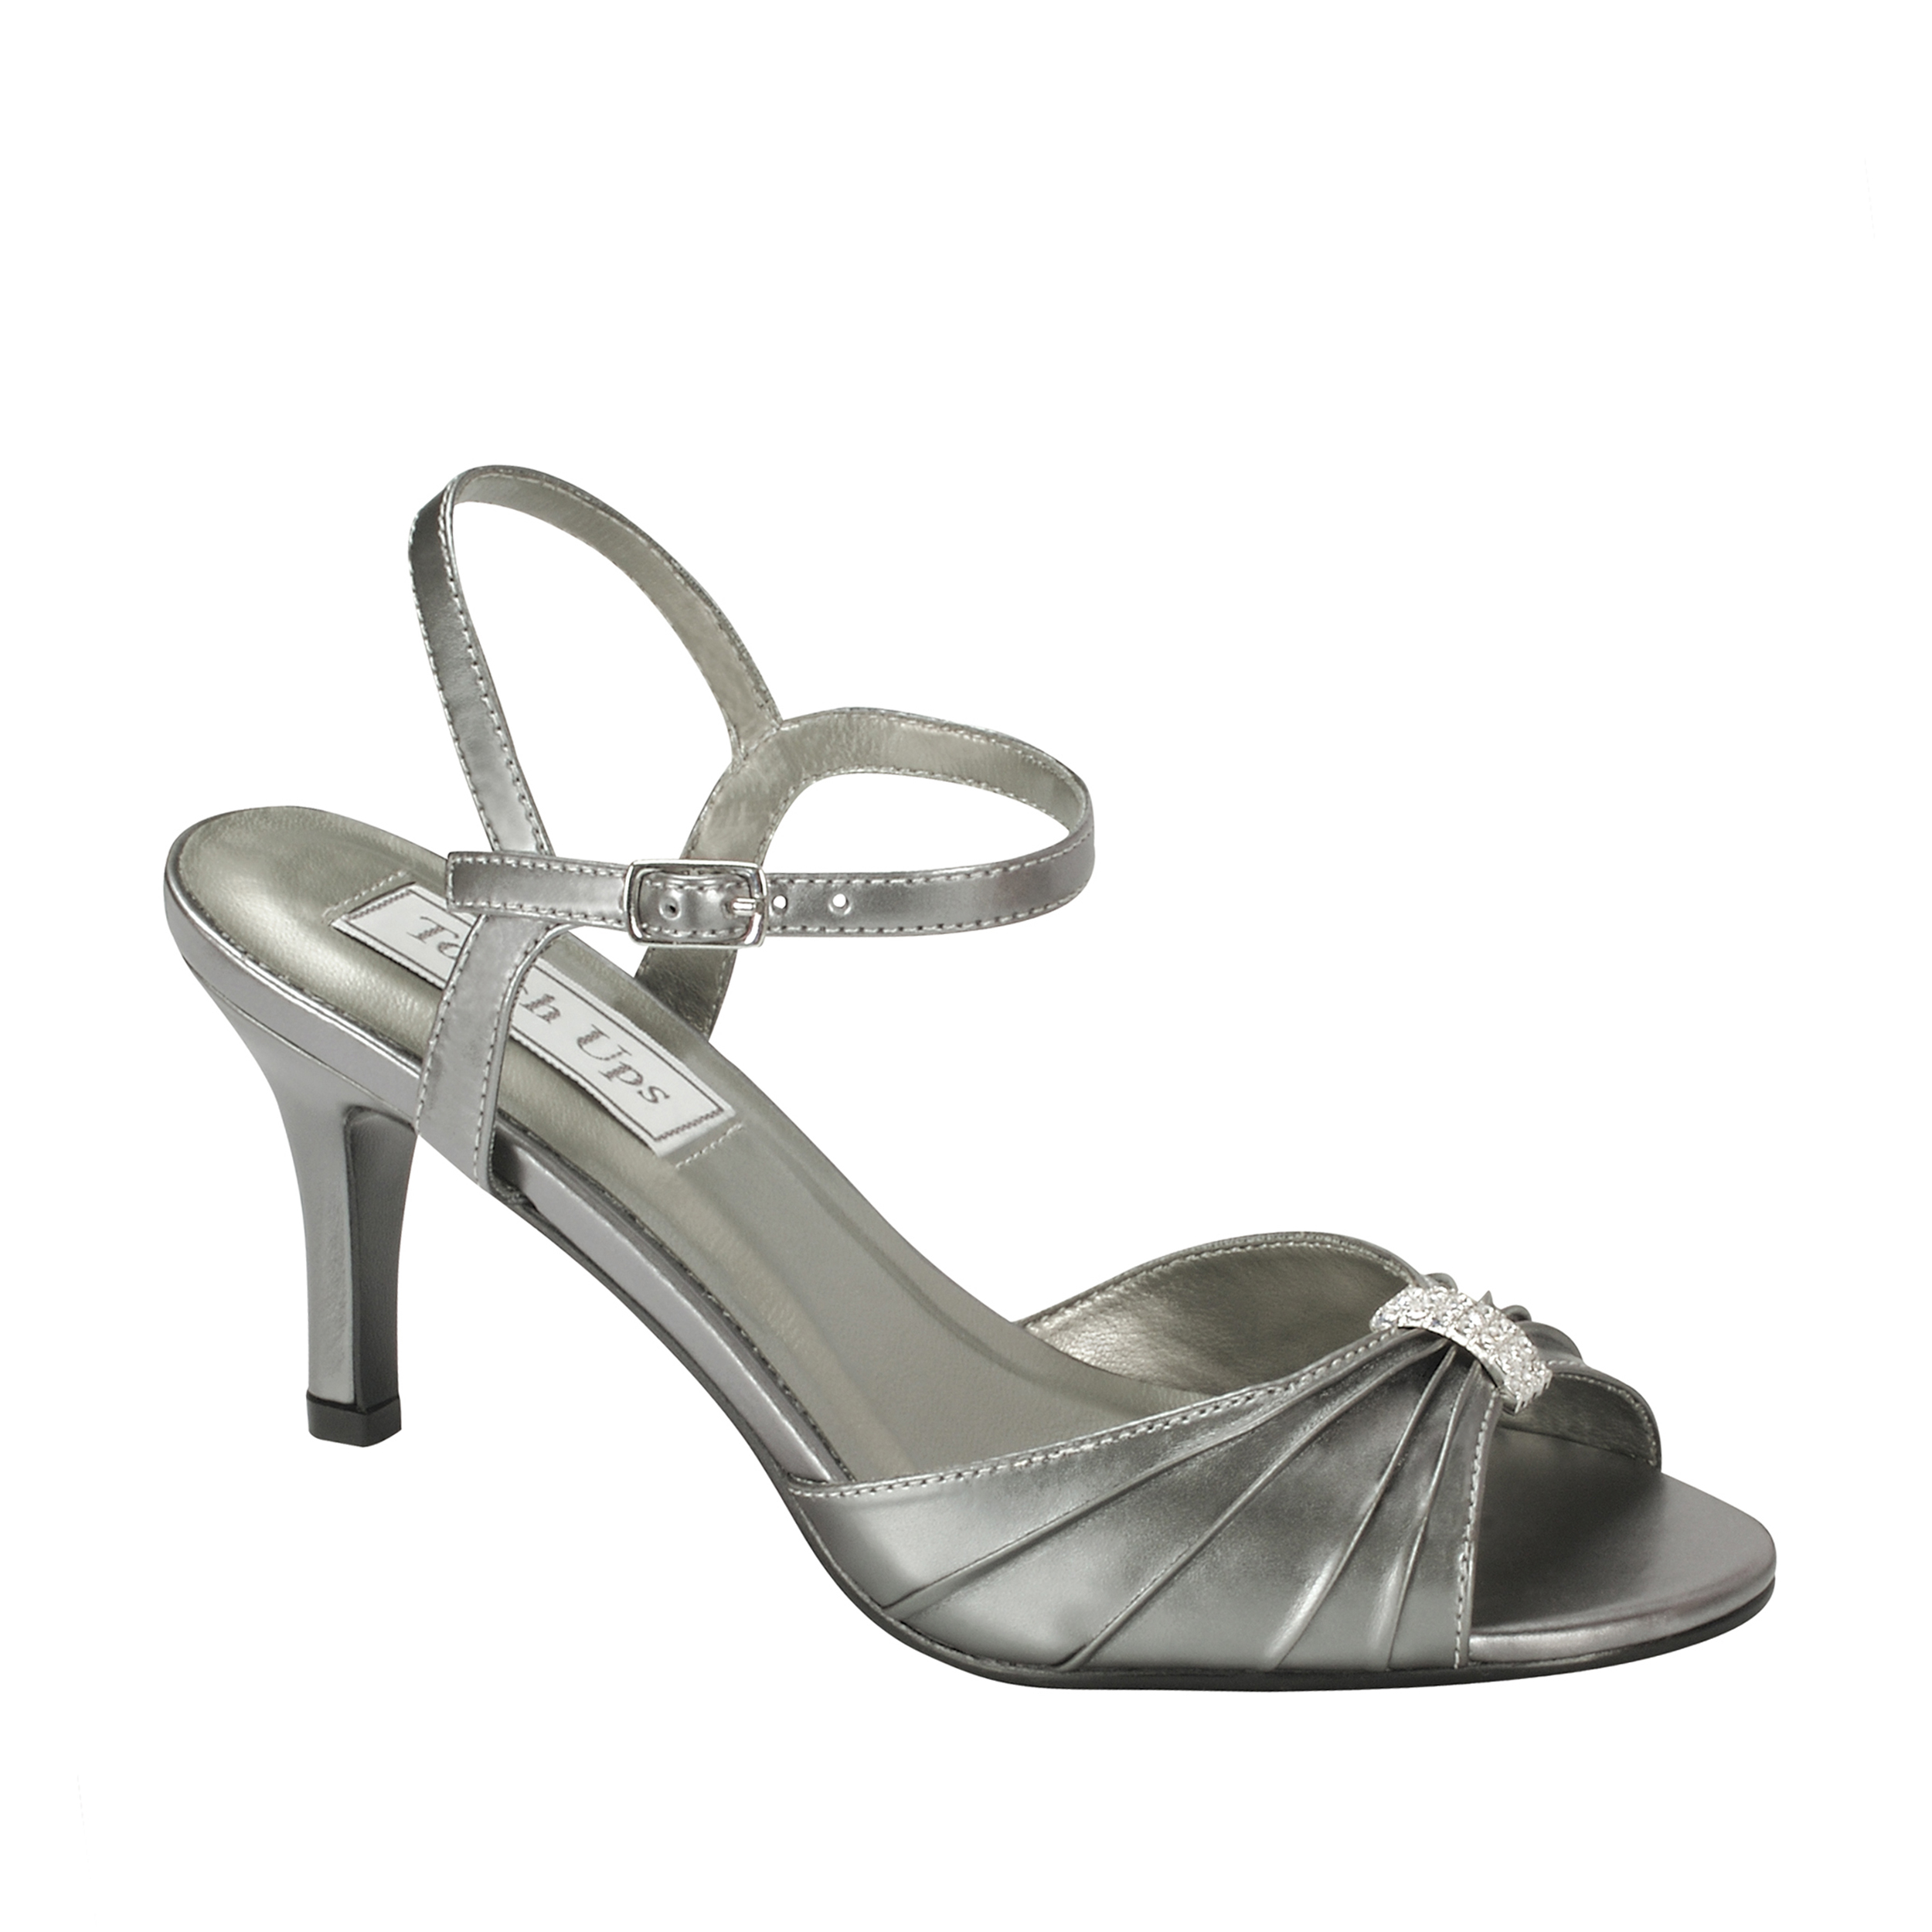 Touch Ups Womens Asher Ankle Wrap Sandal,Gunmetal,11 W US